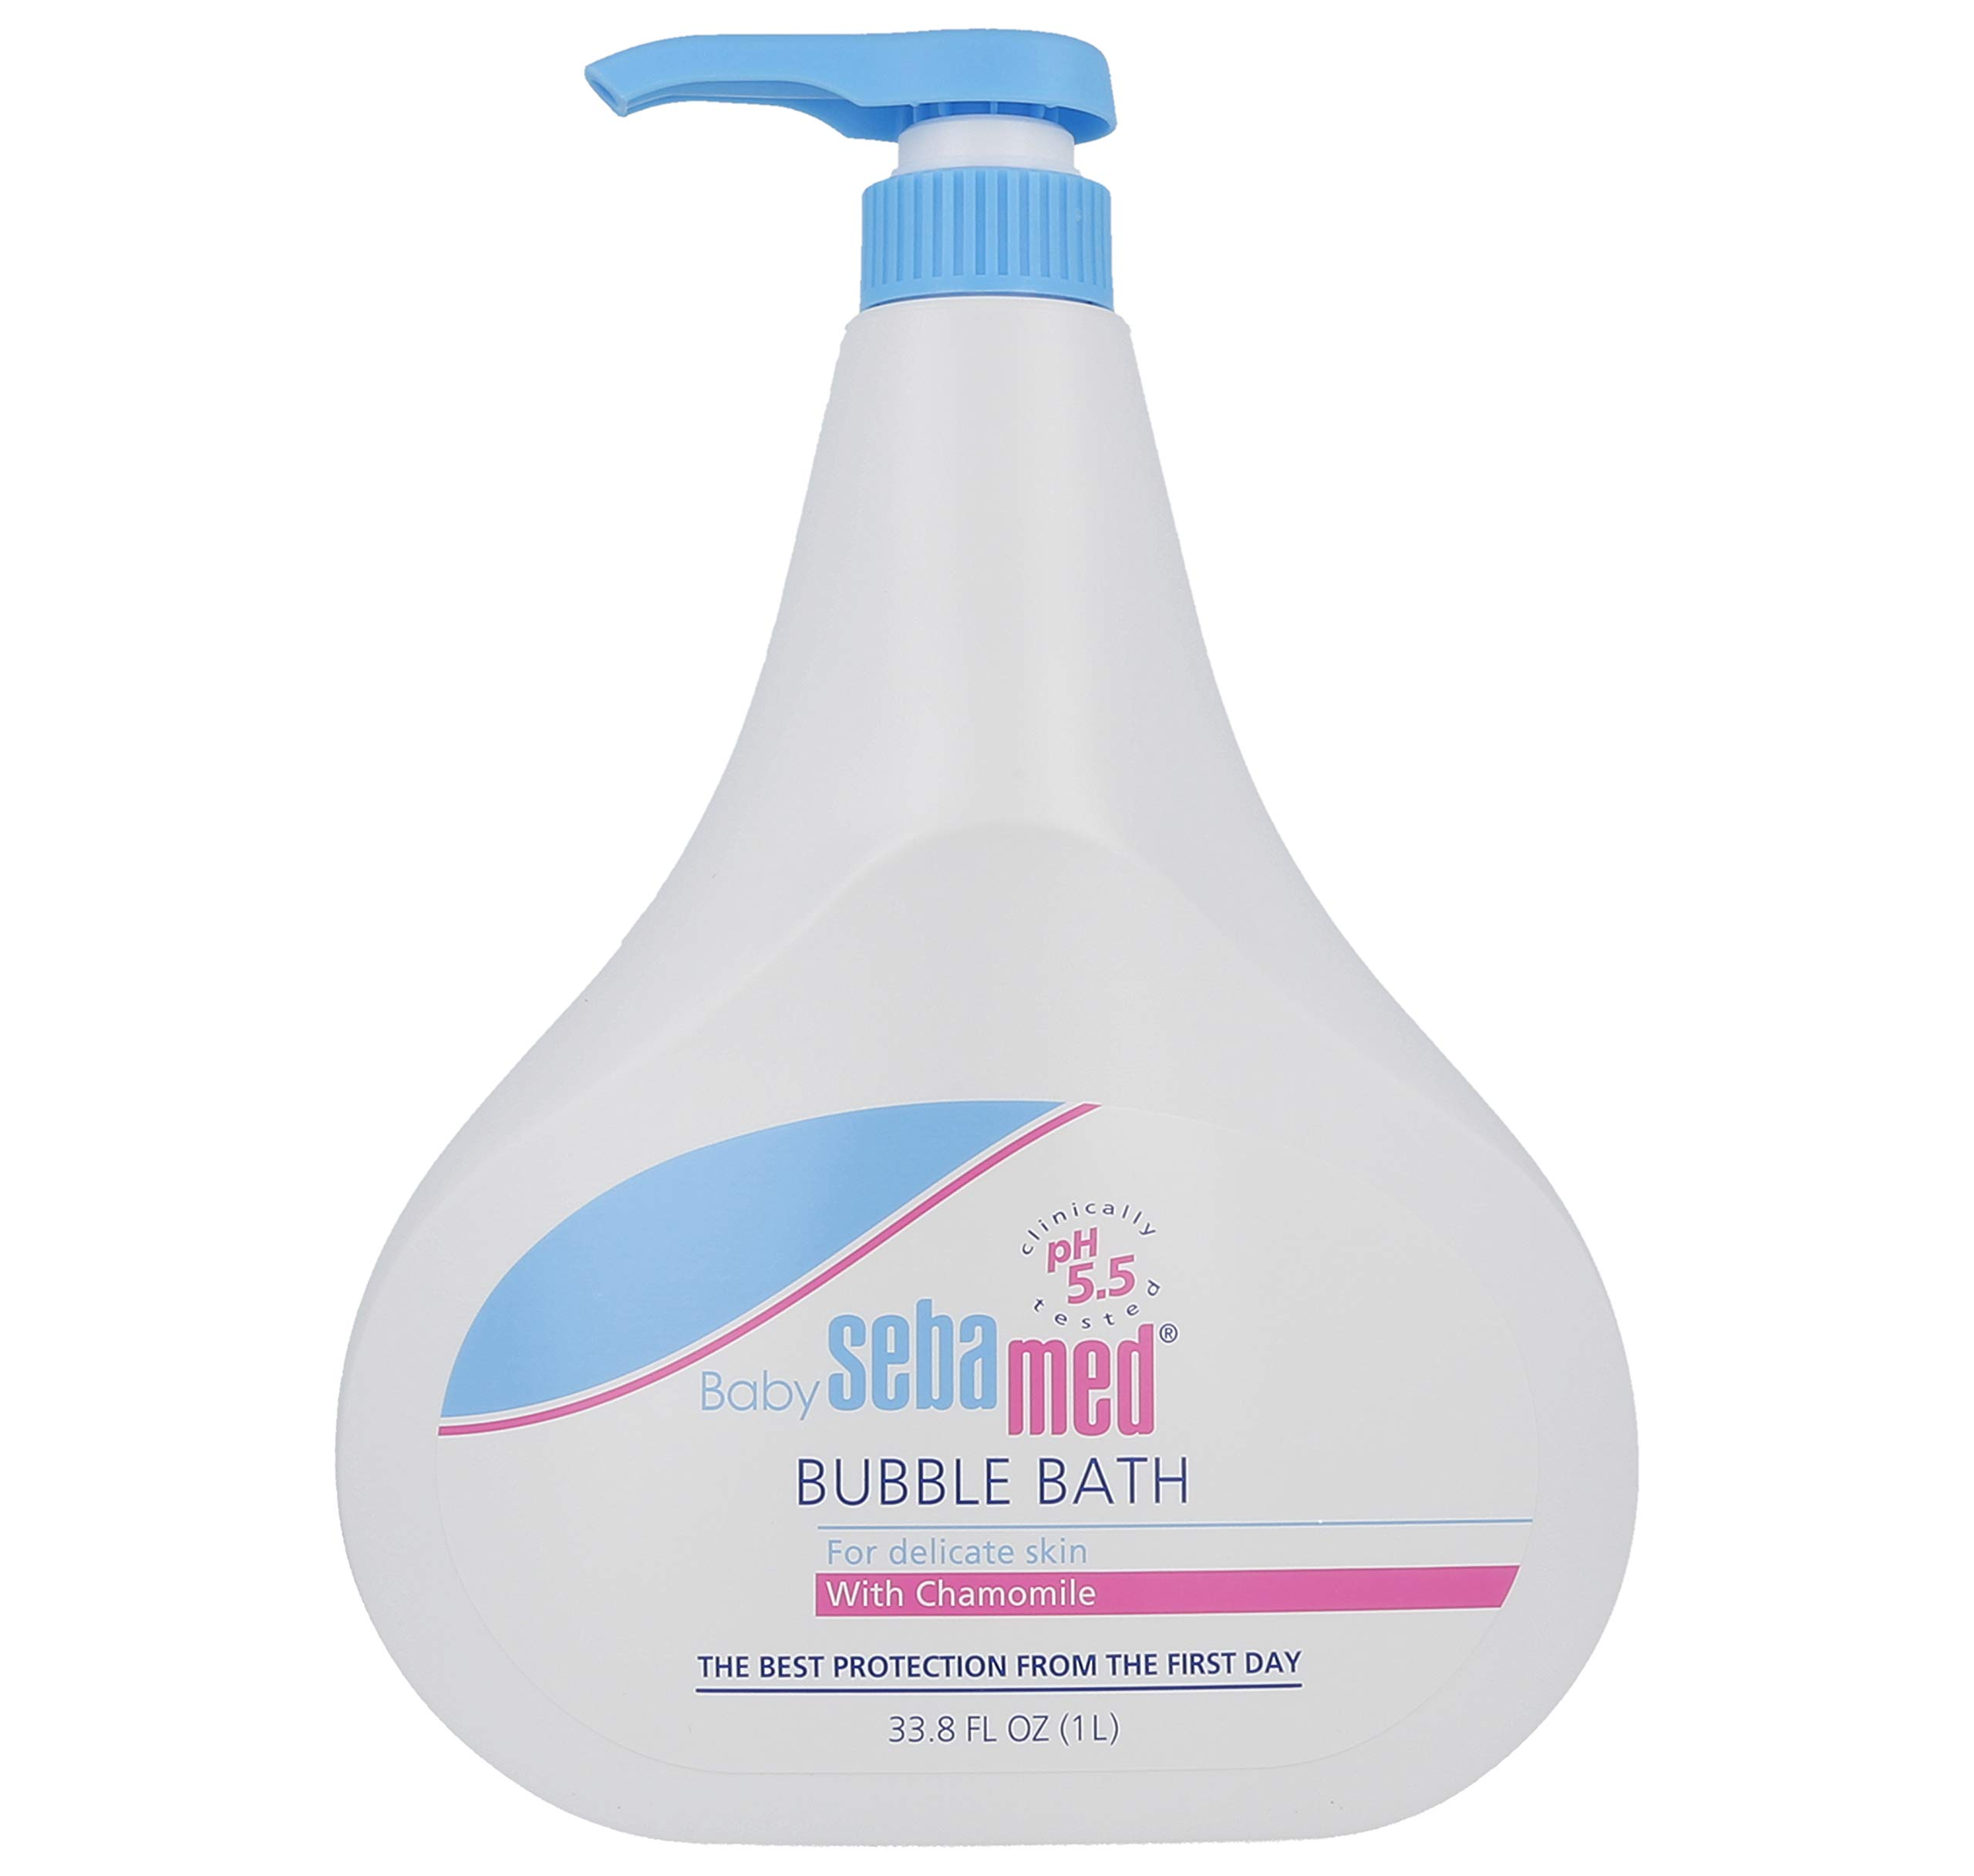 Sebamed No Tears No Phthalates Baby Bubble Bath with Pump, 1 L by SEBAMED